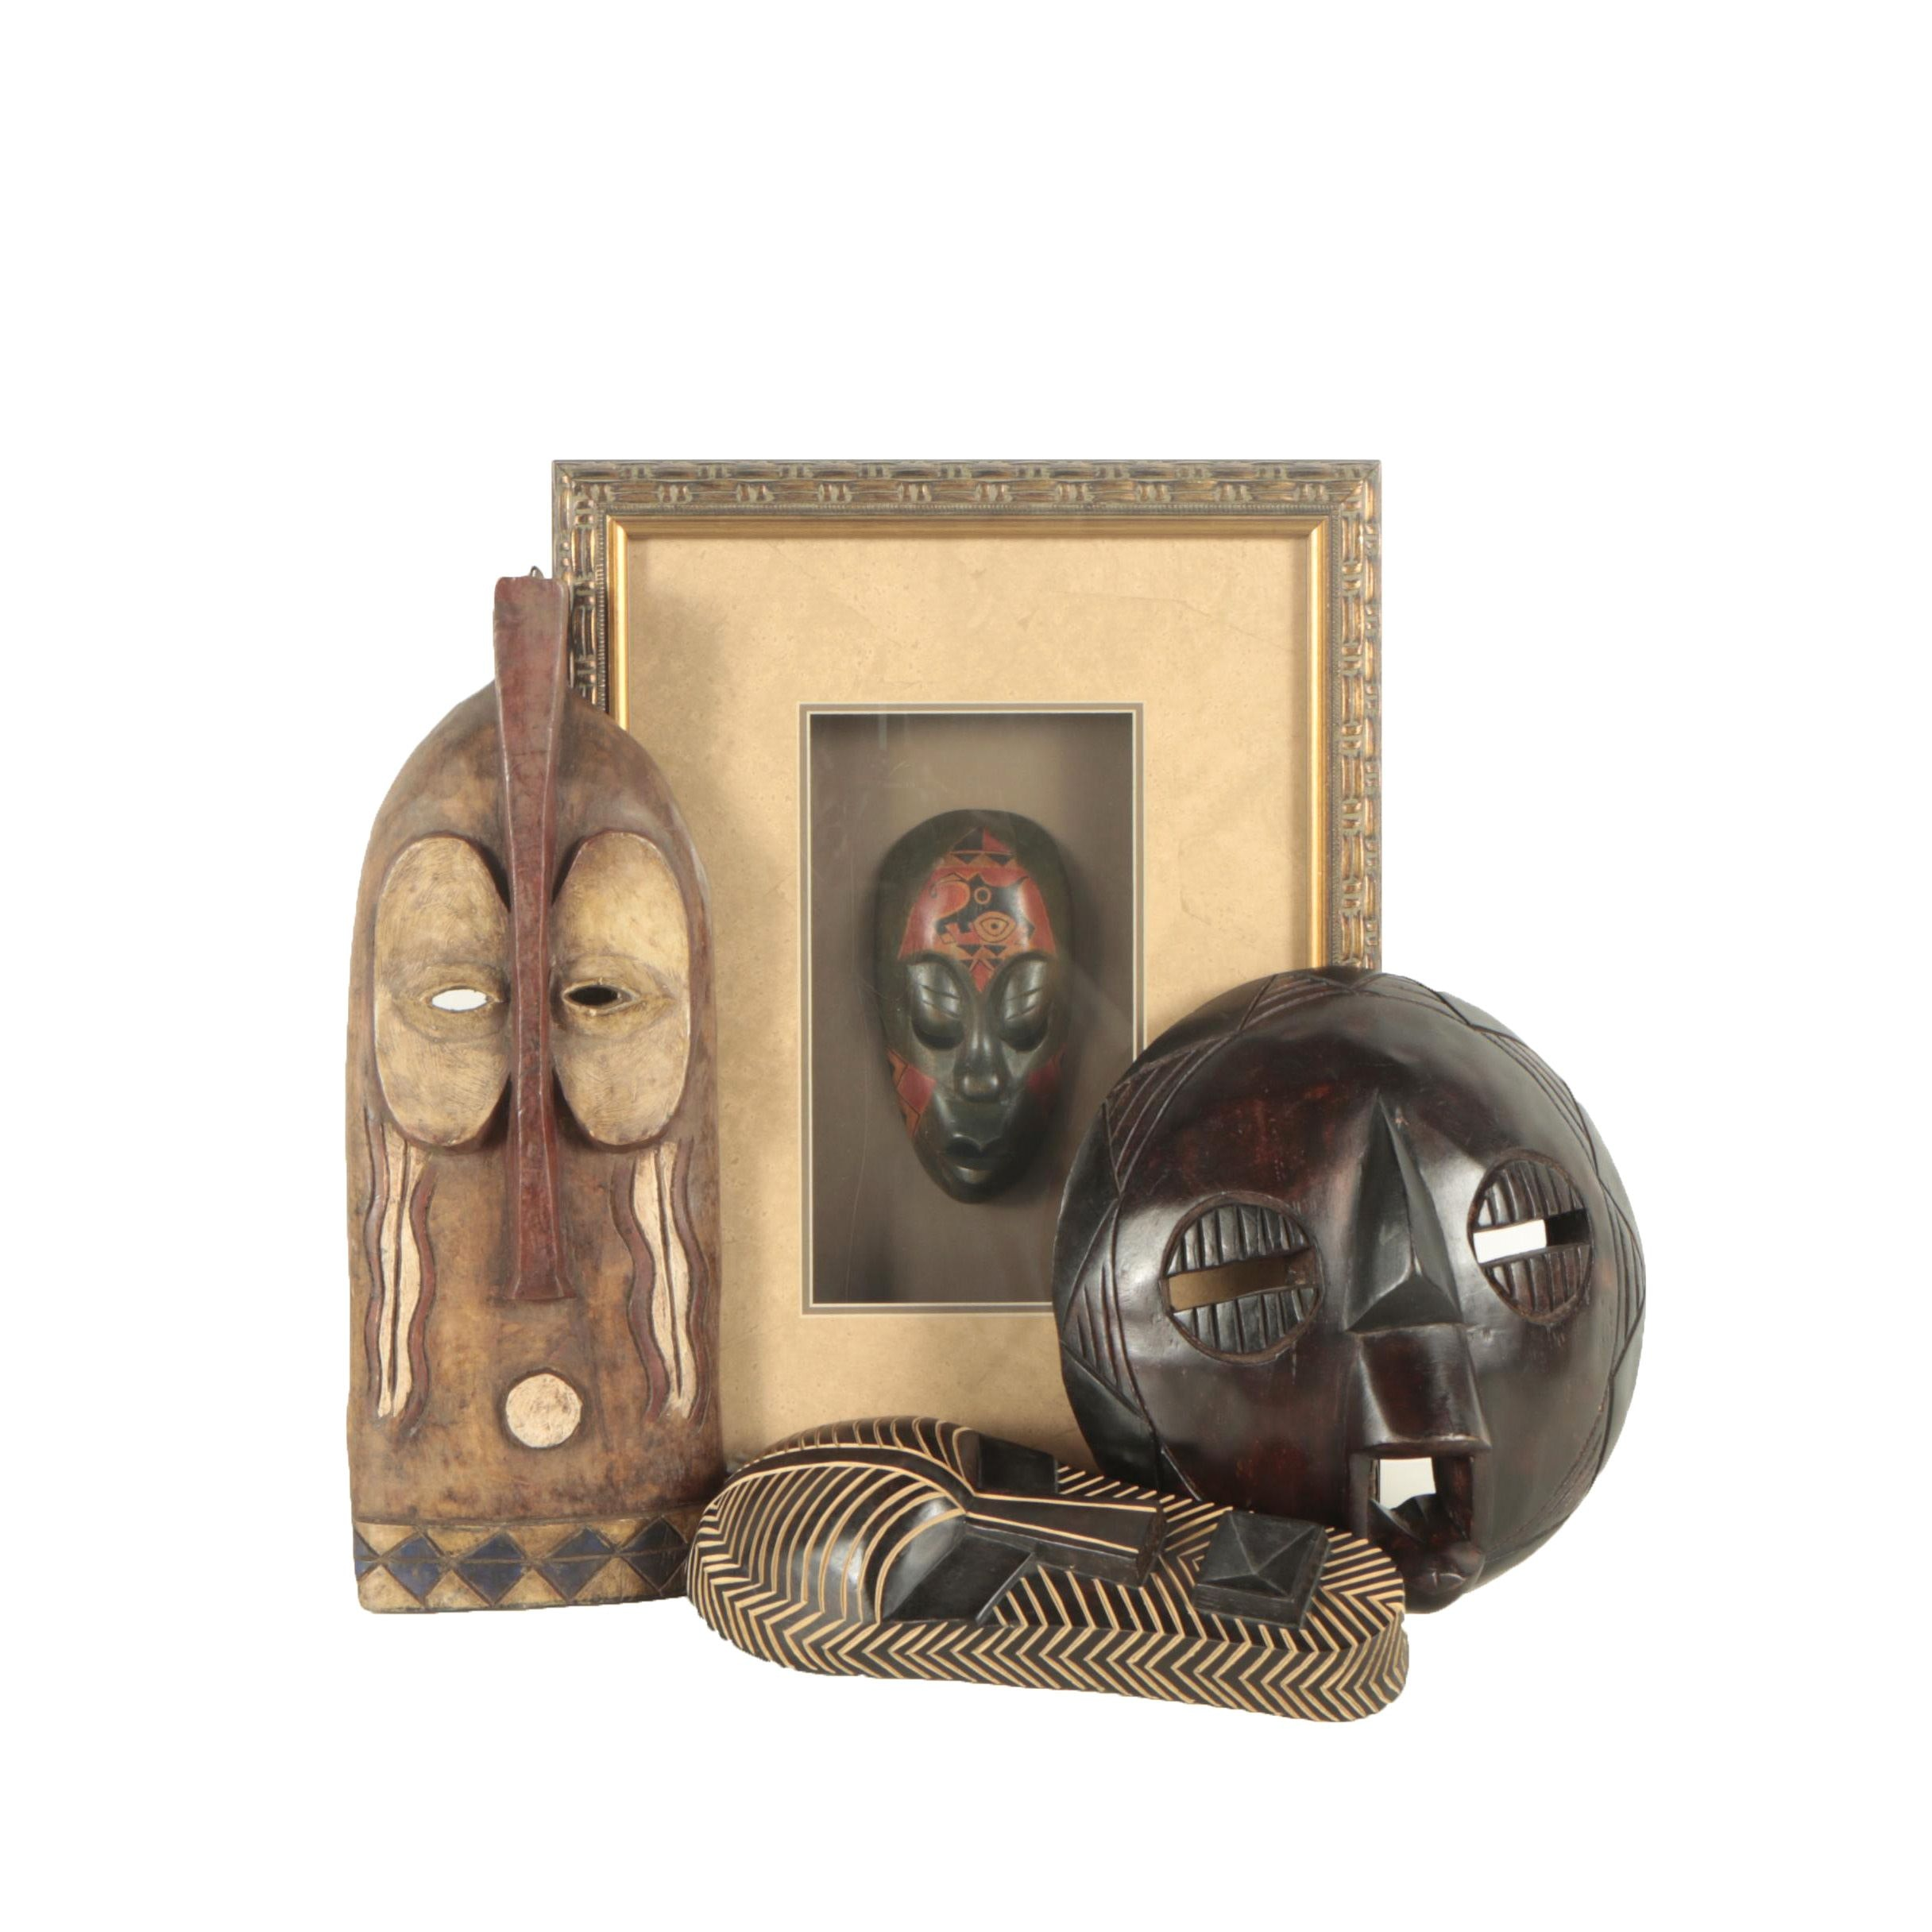 Pier 1 Imports Ghana Collection Carved Wooden Masks